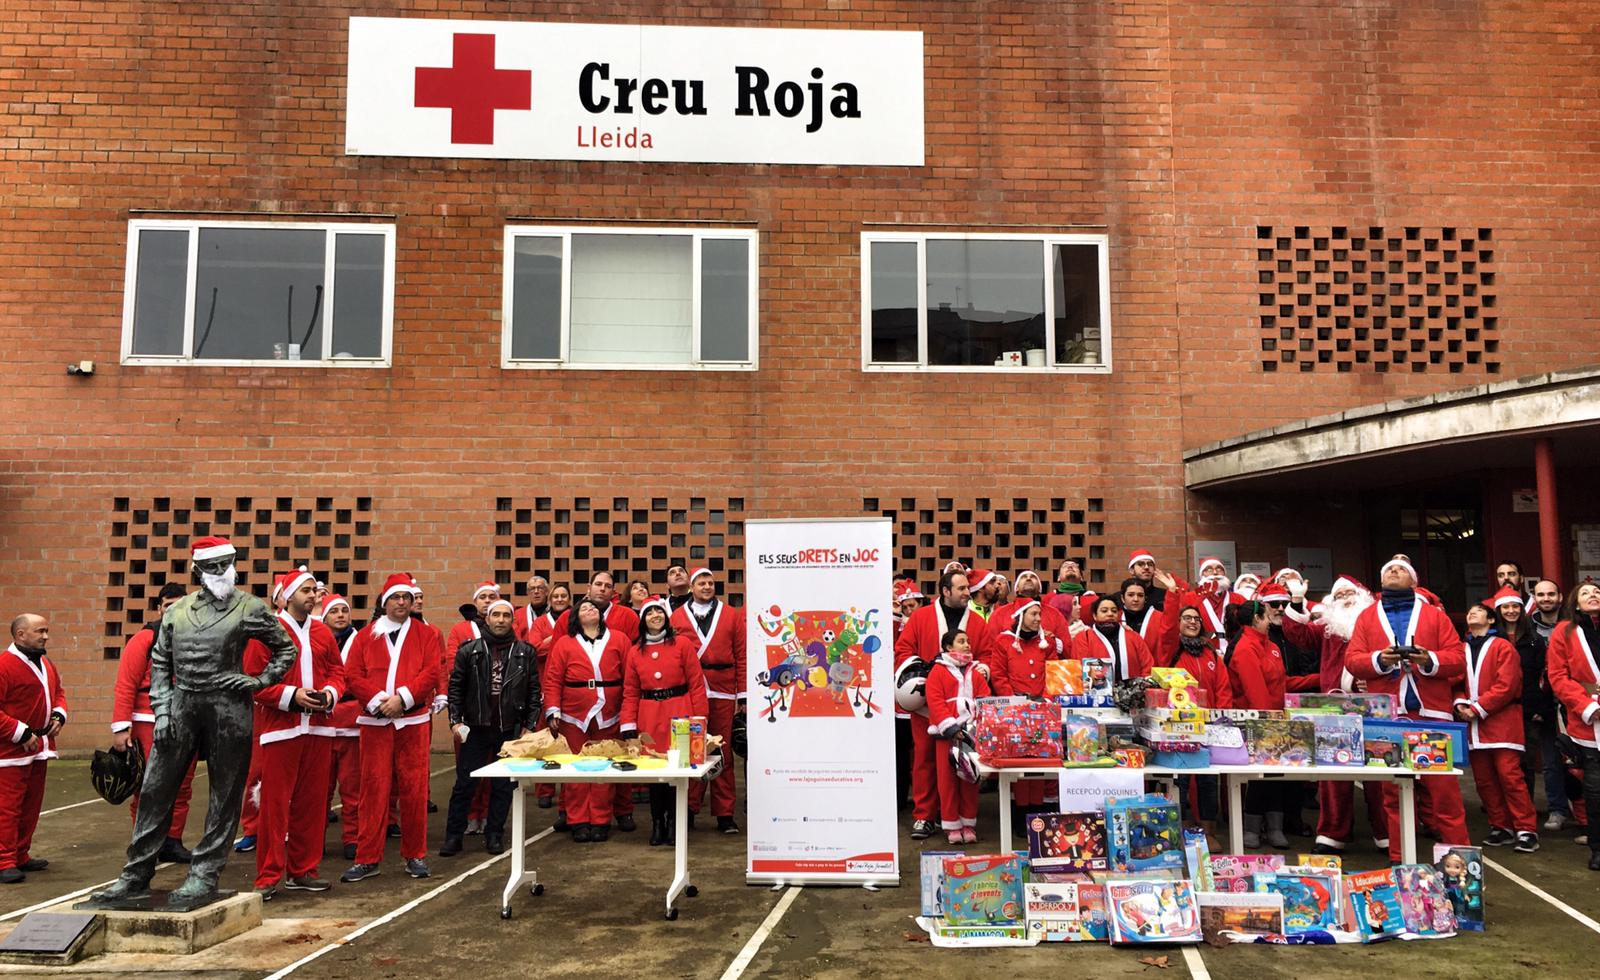 Club mini red cross cruz roja lleida the comminity